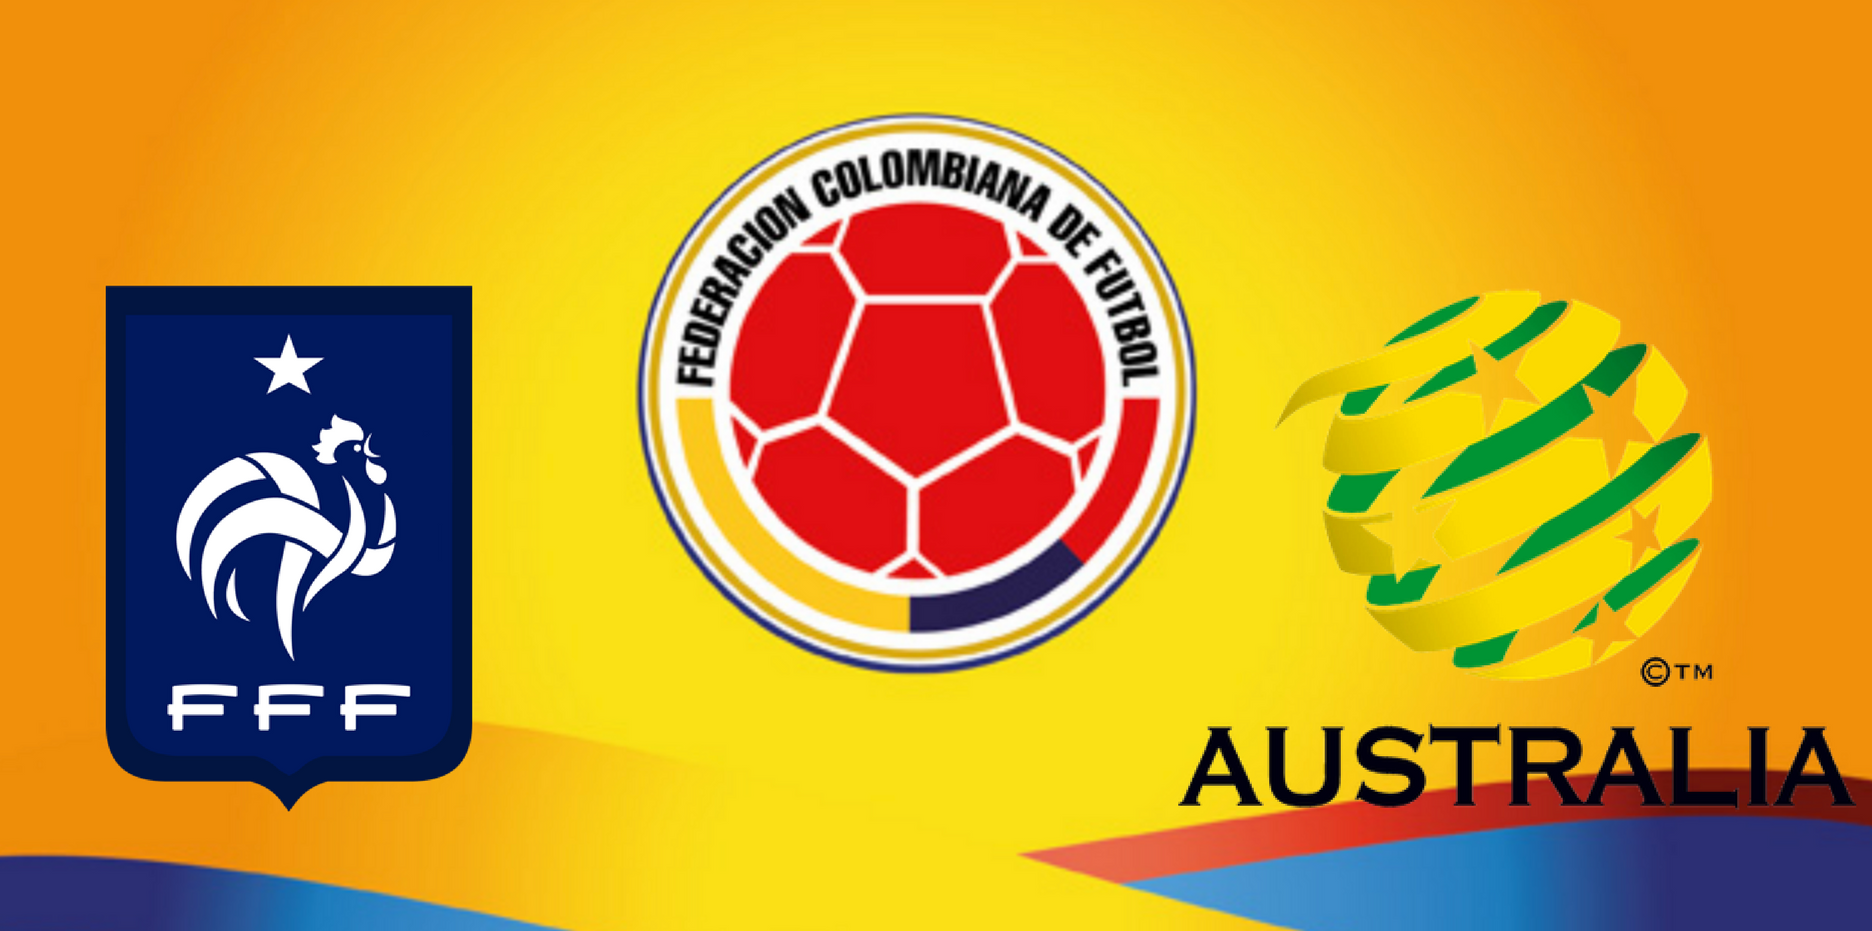 Colombia vs Australia football game